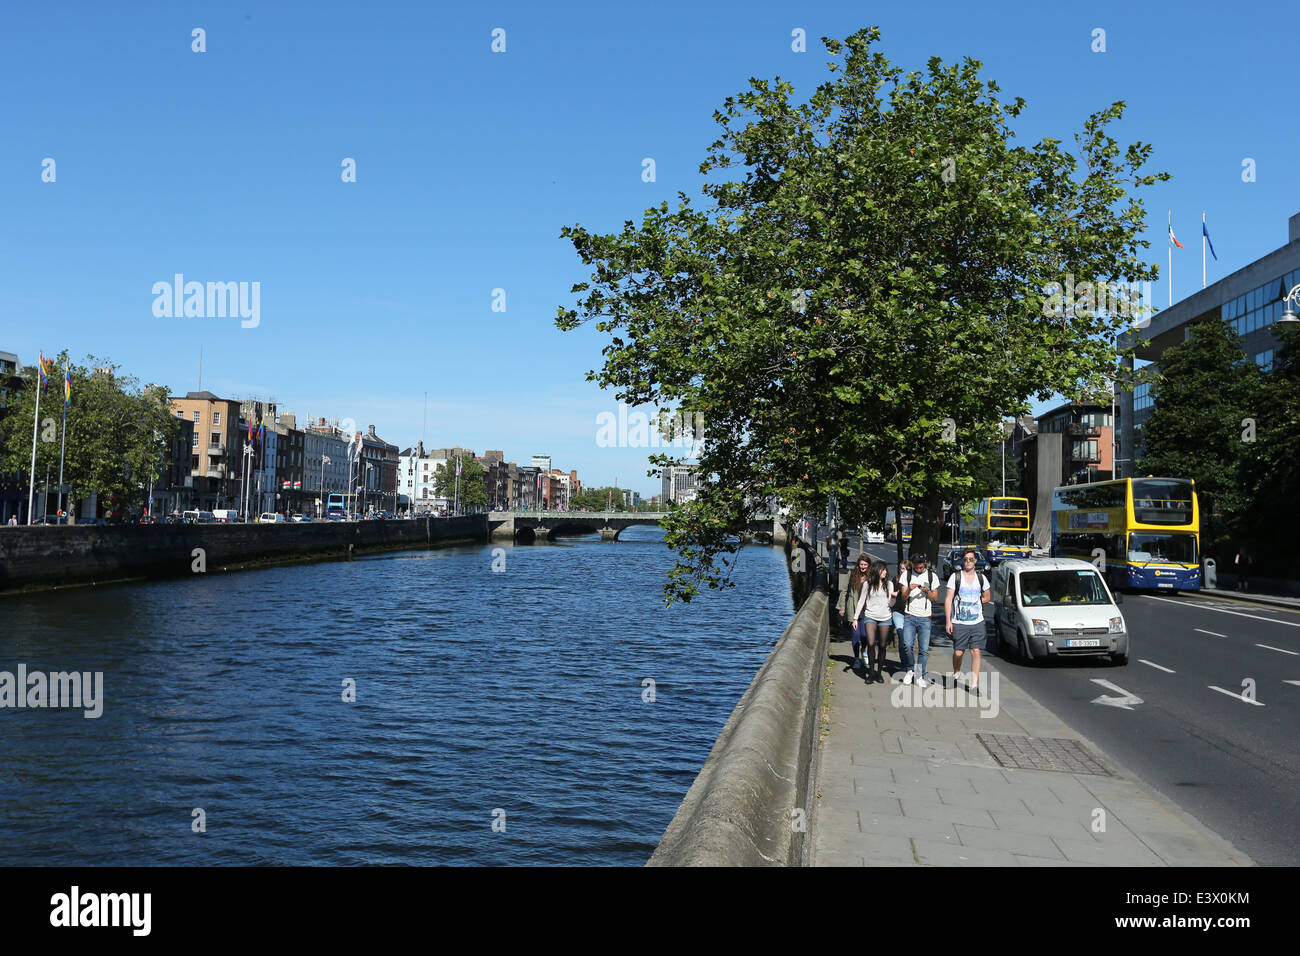 People walk on a footpath at Wood Quay along the River Liffey in Dublin during a period of good weather - Stock Image